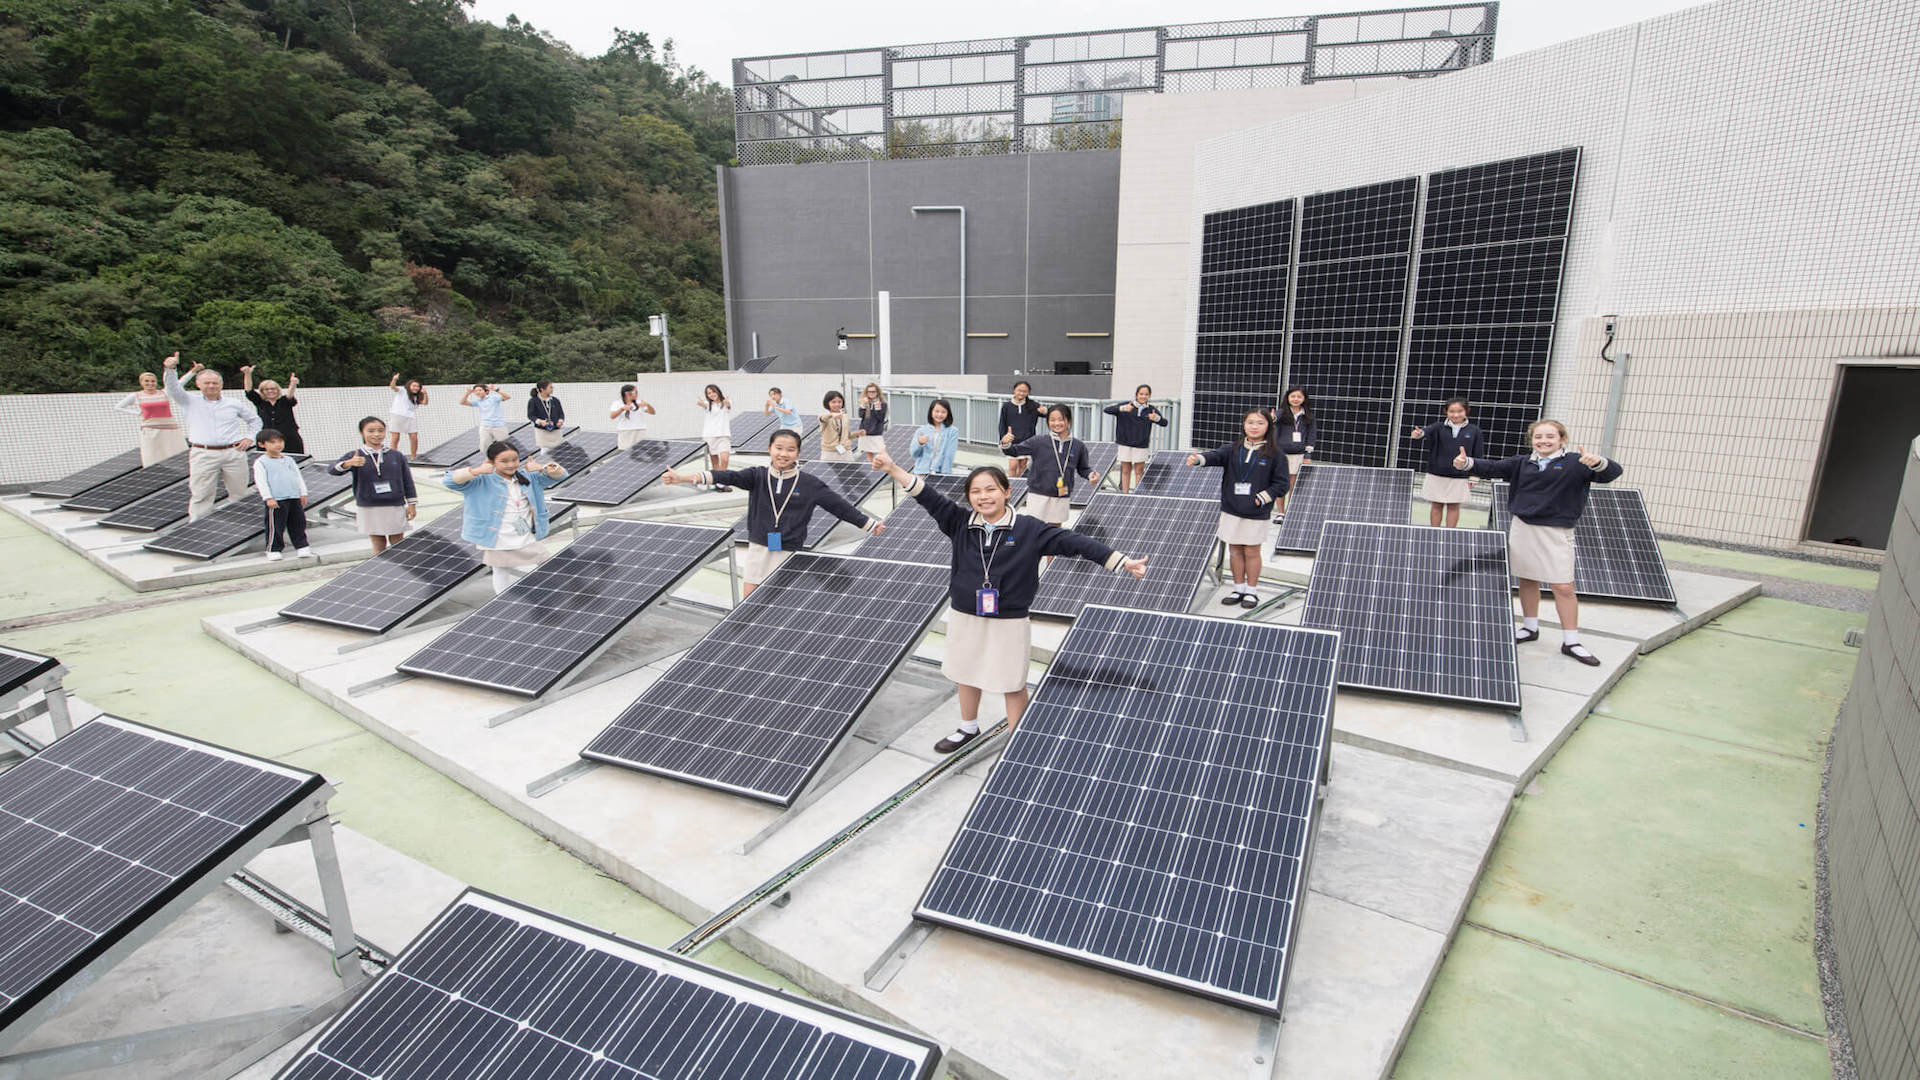 students standing around large solar panels